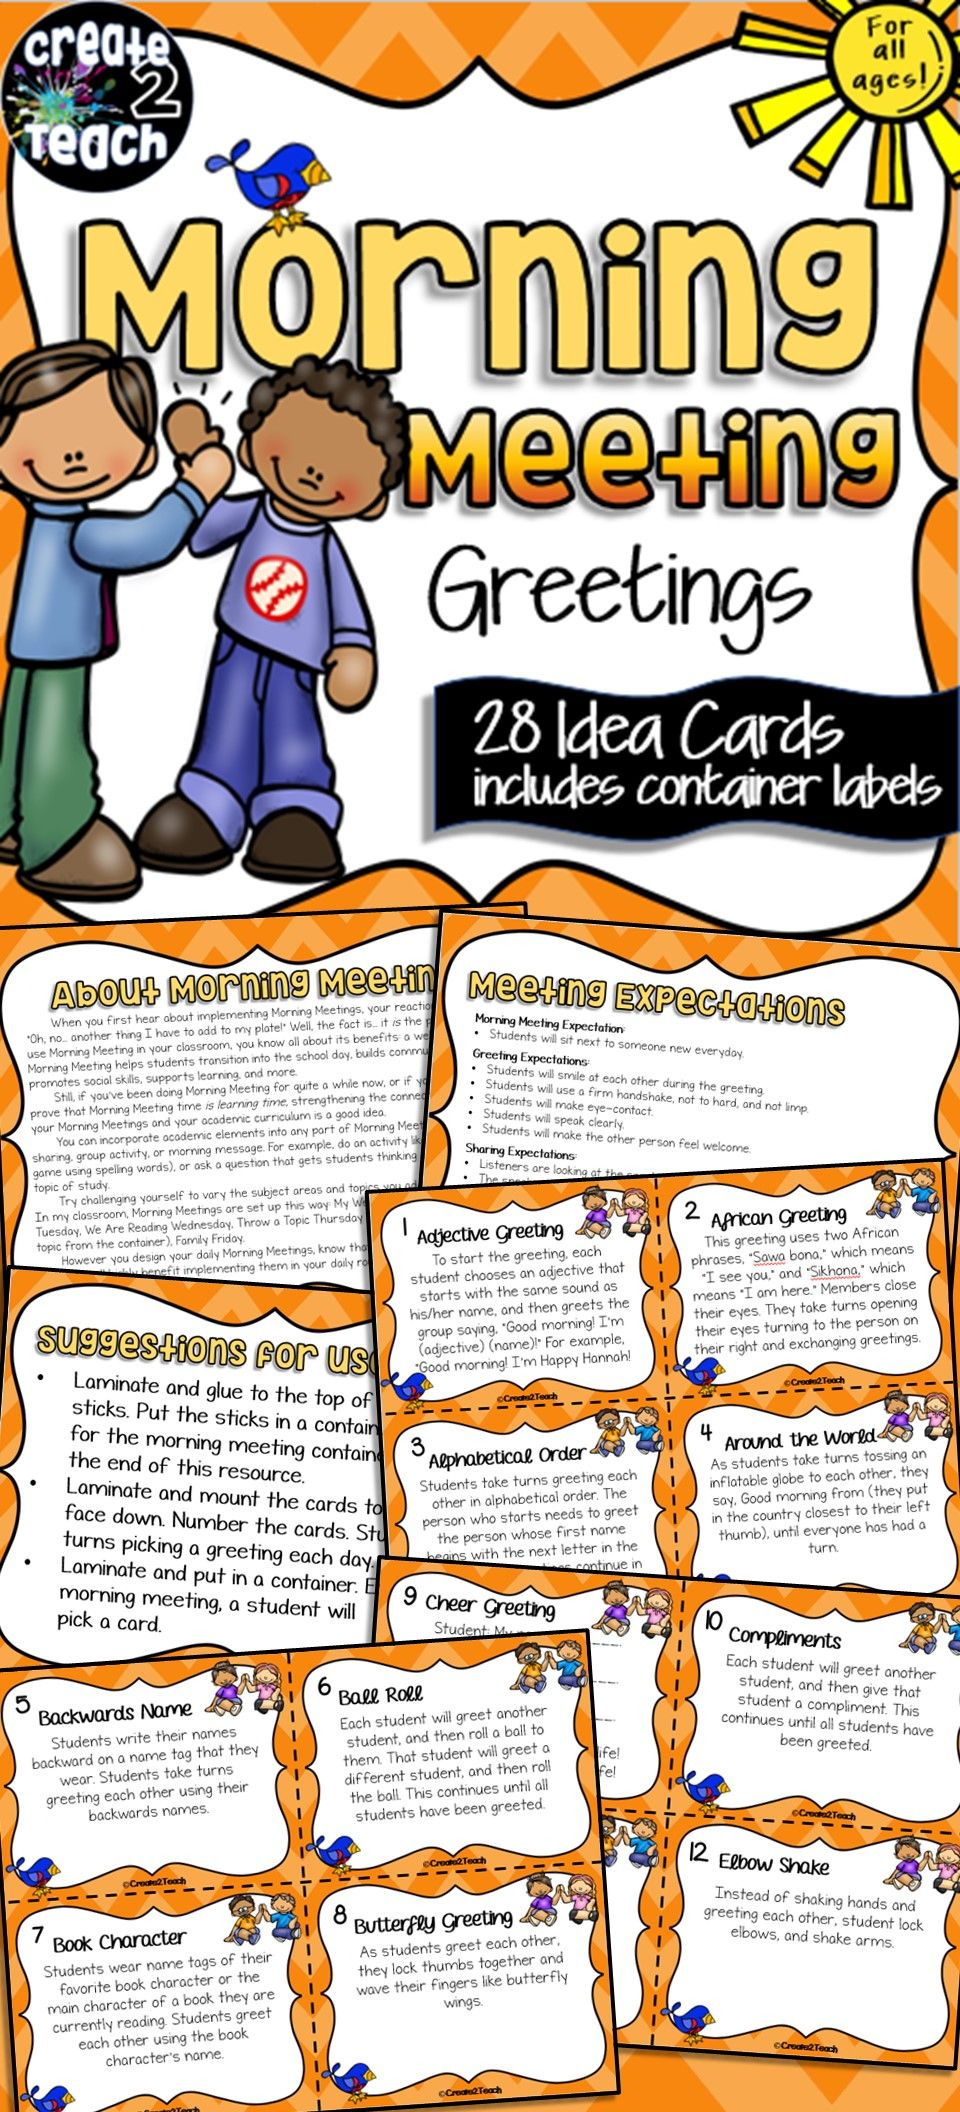 Morning Meeting Greeting Idea Cards Pinterest Students Learning